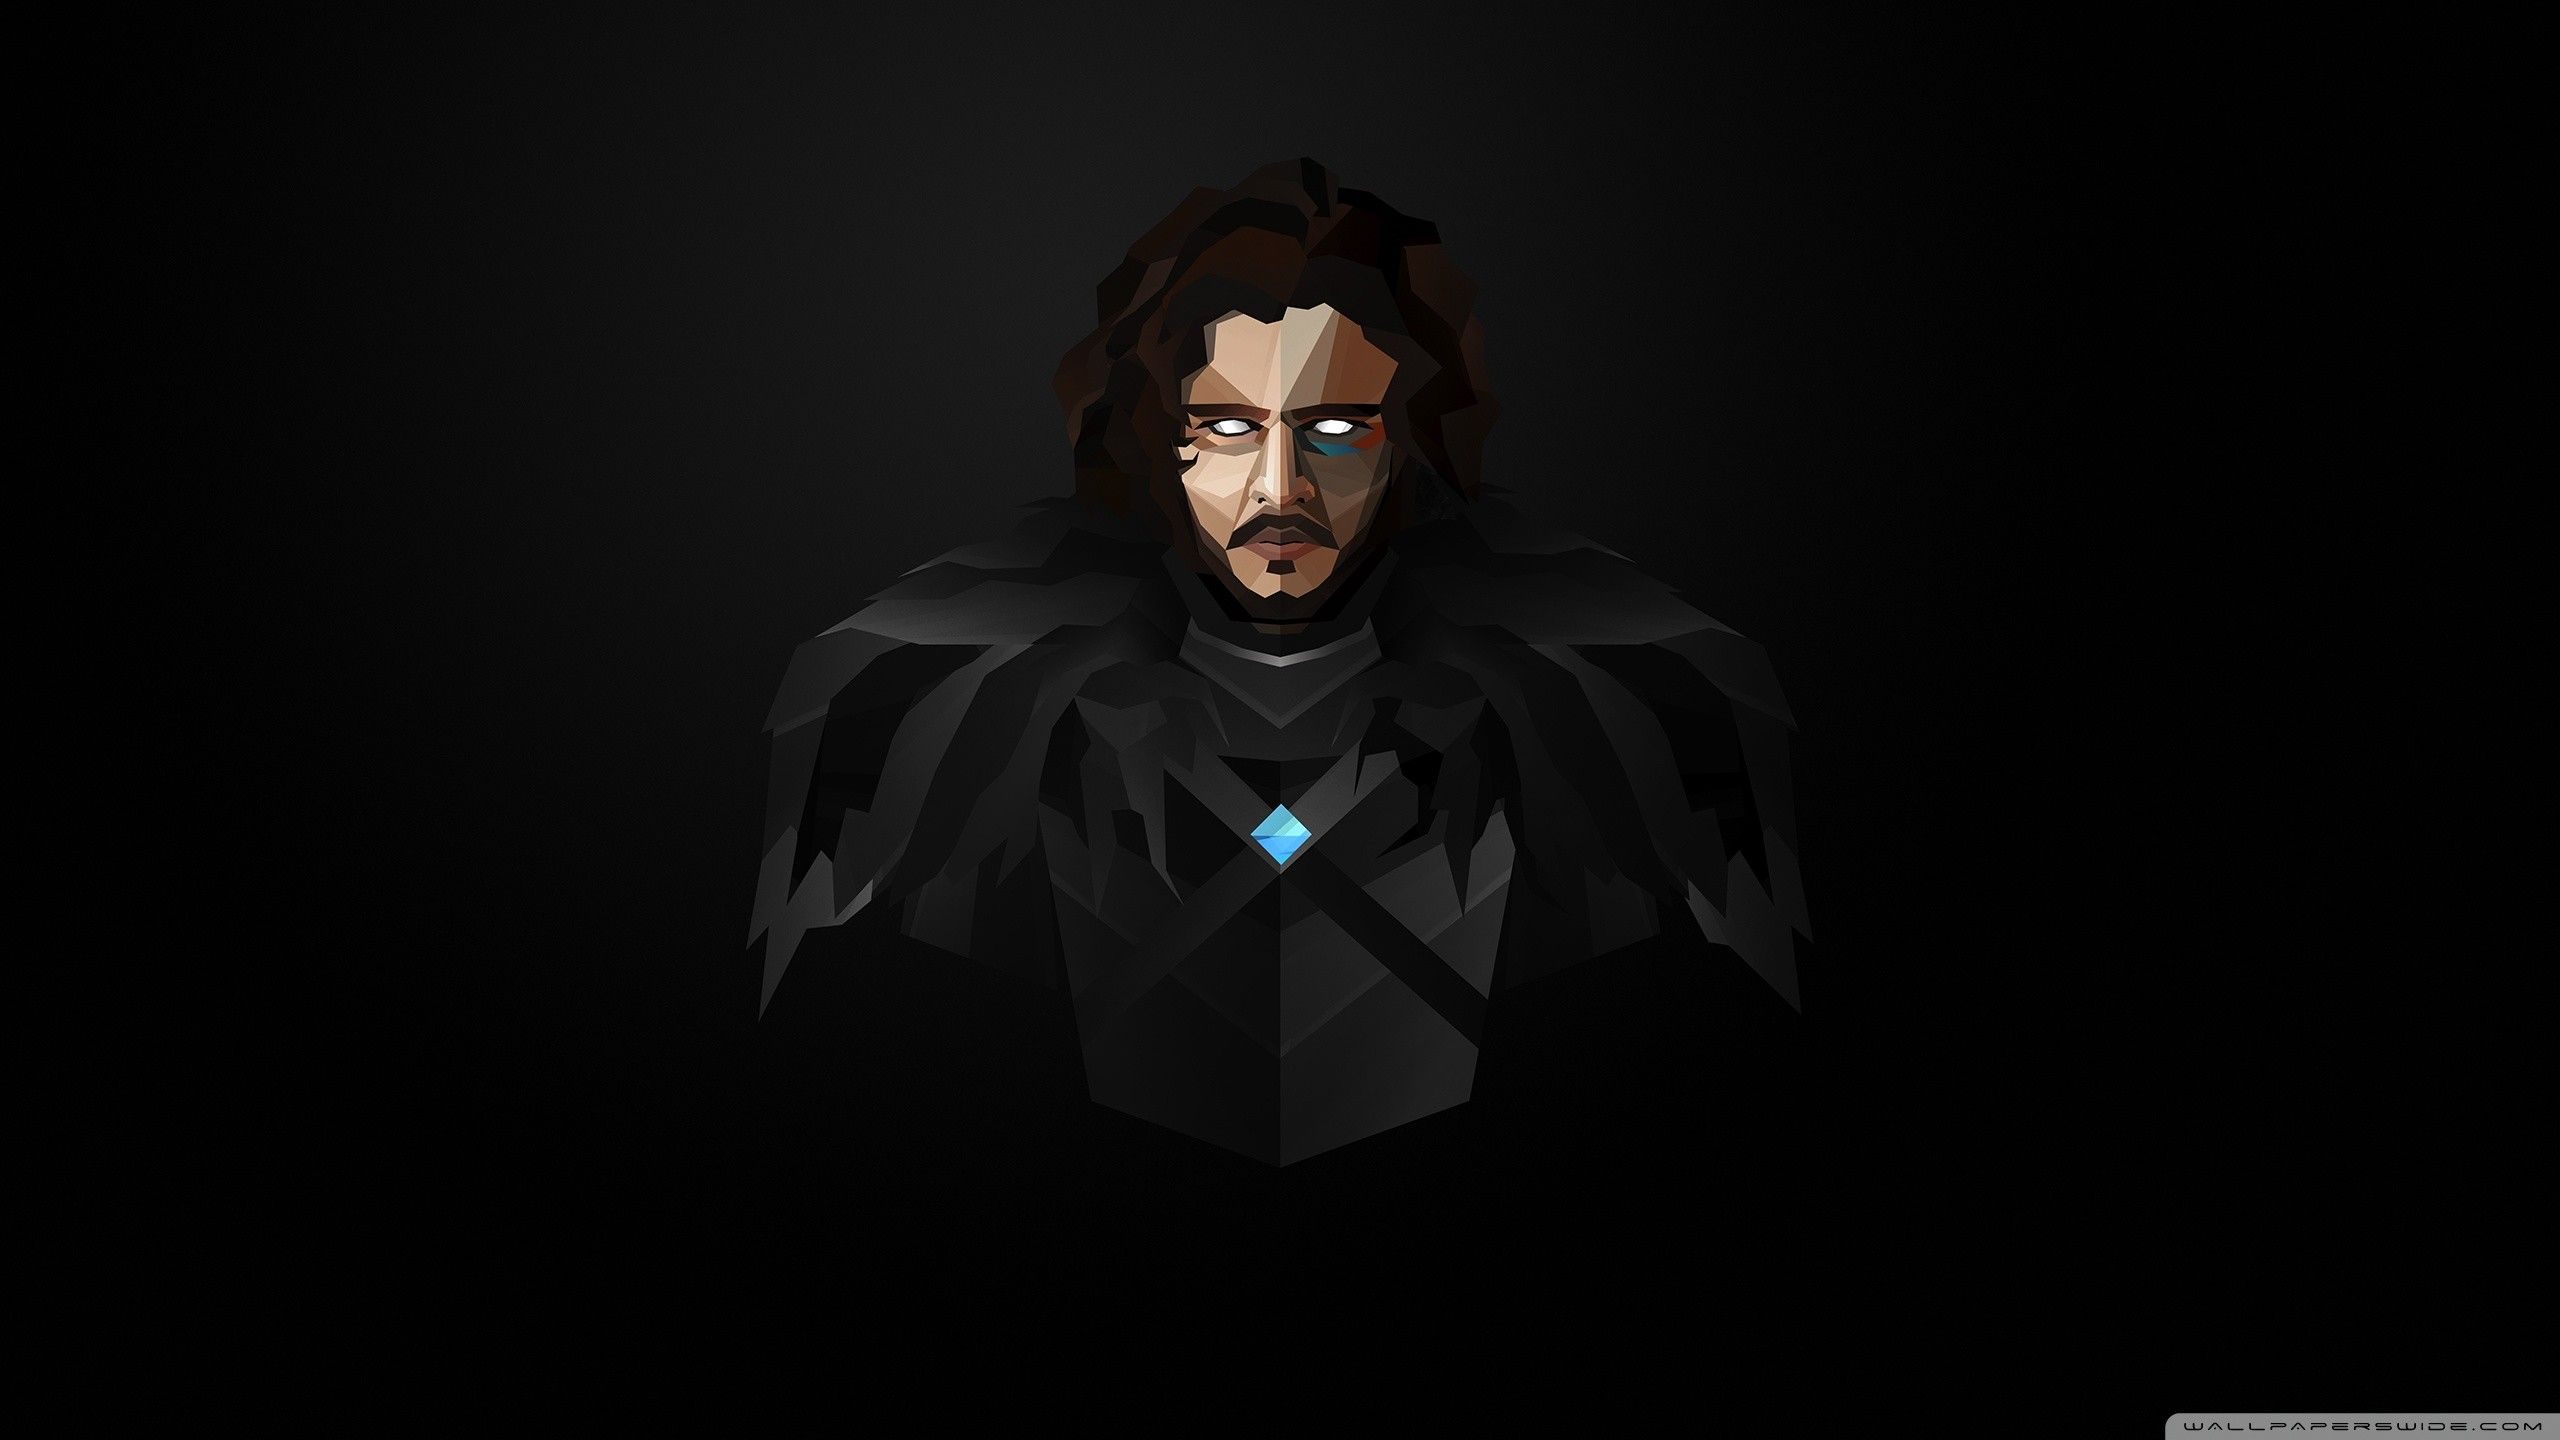 62 Jon Snow Wallpapers On Wallpaperplay Hd Wallpaper Wallpaper